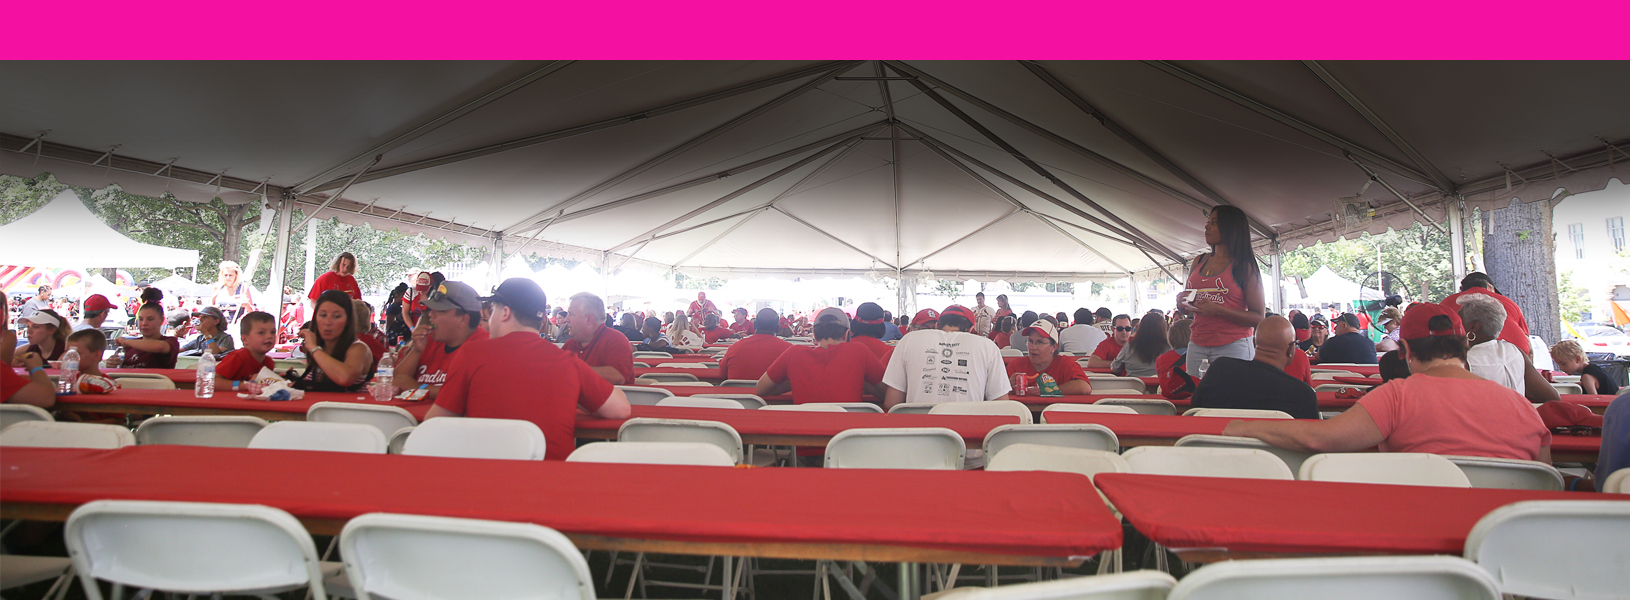 Cardinals Opening Day - Elite Event Services Company Events